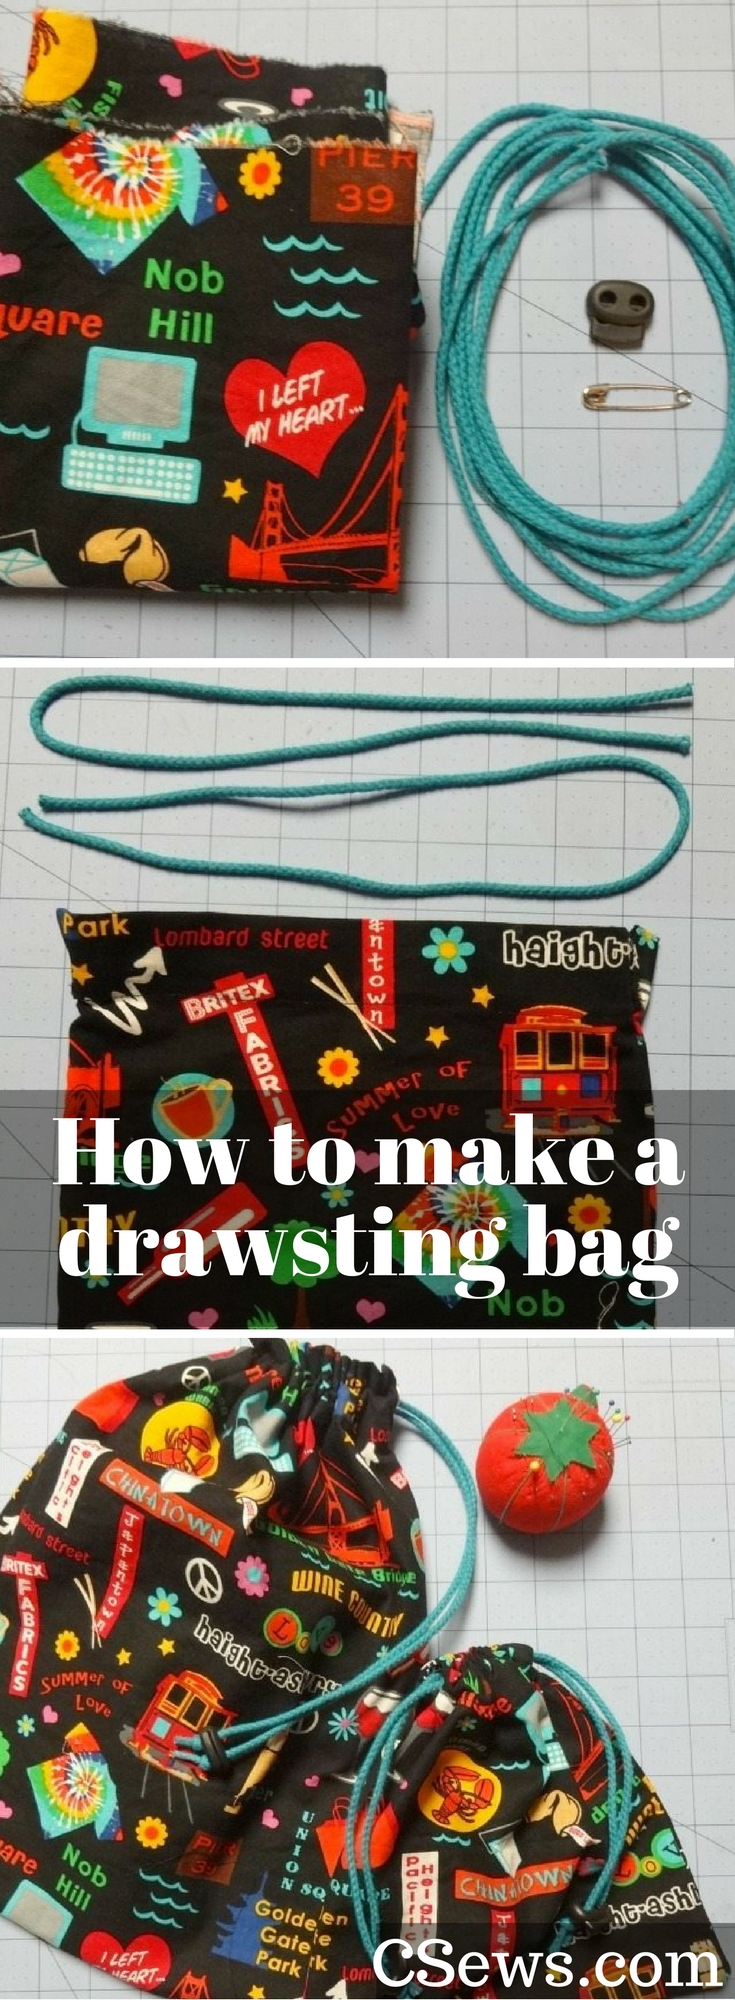 Tutorial: How to make a double- and single-drawstring bag